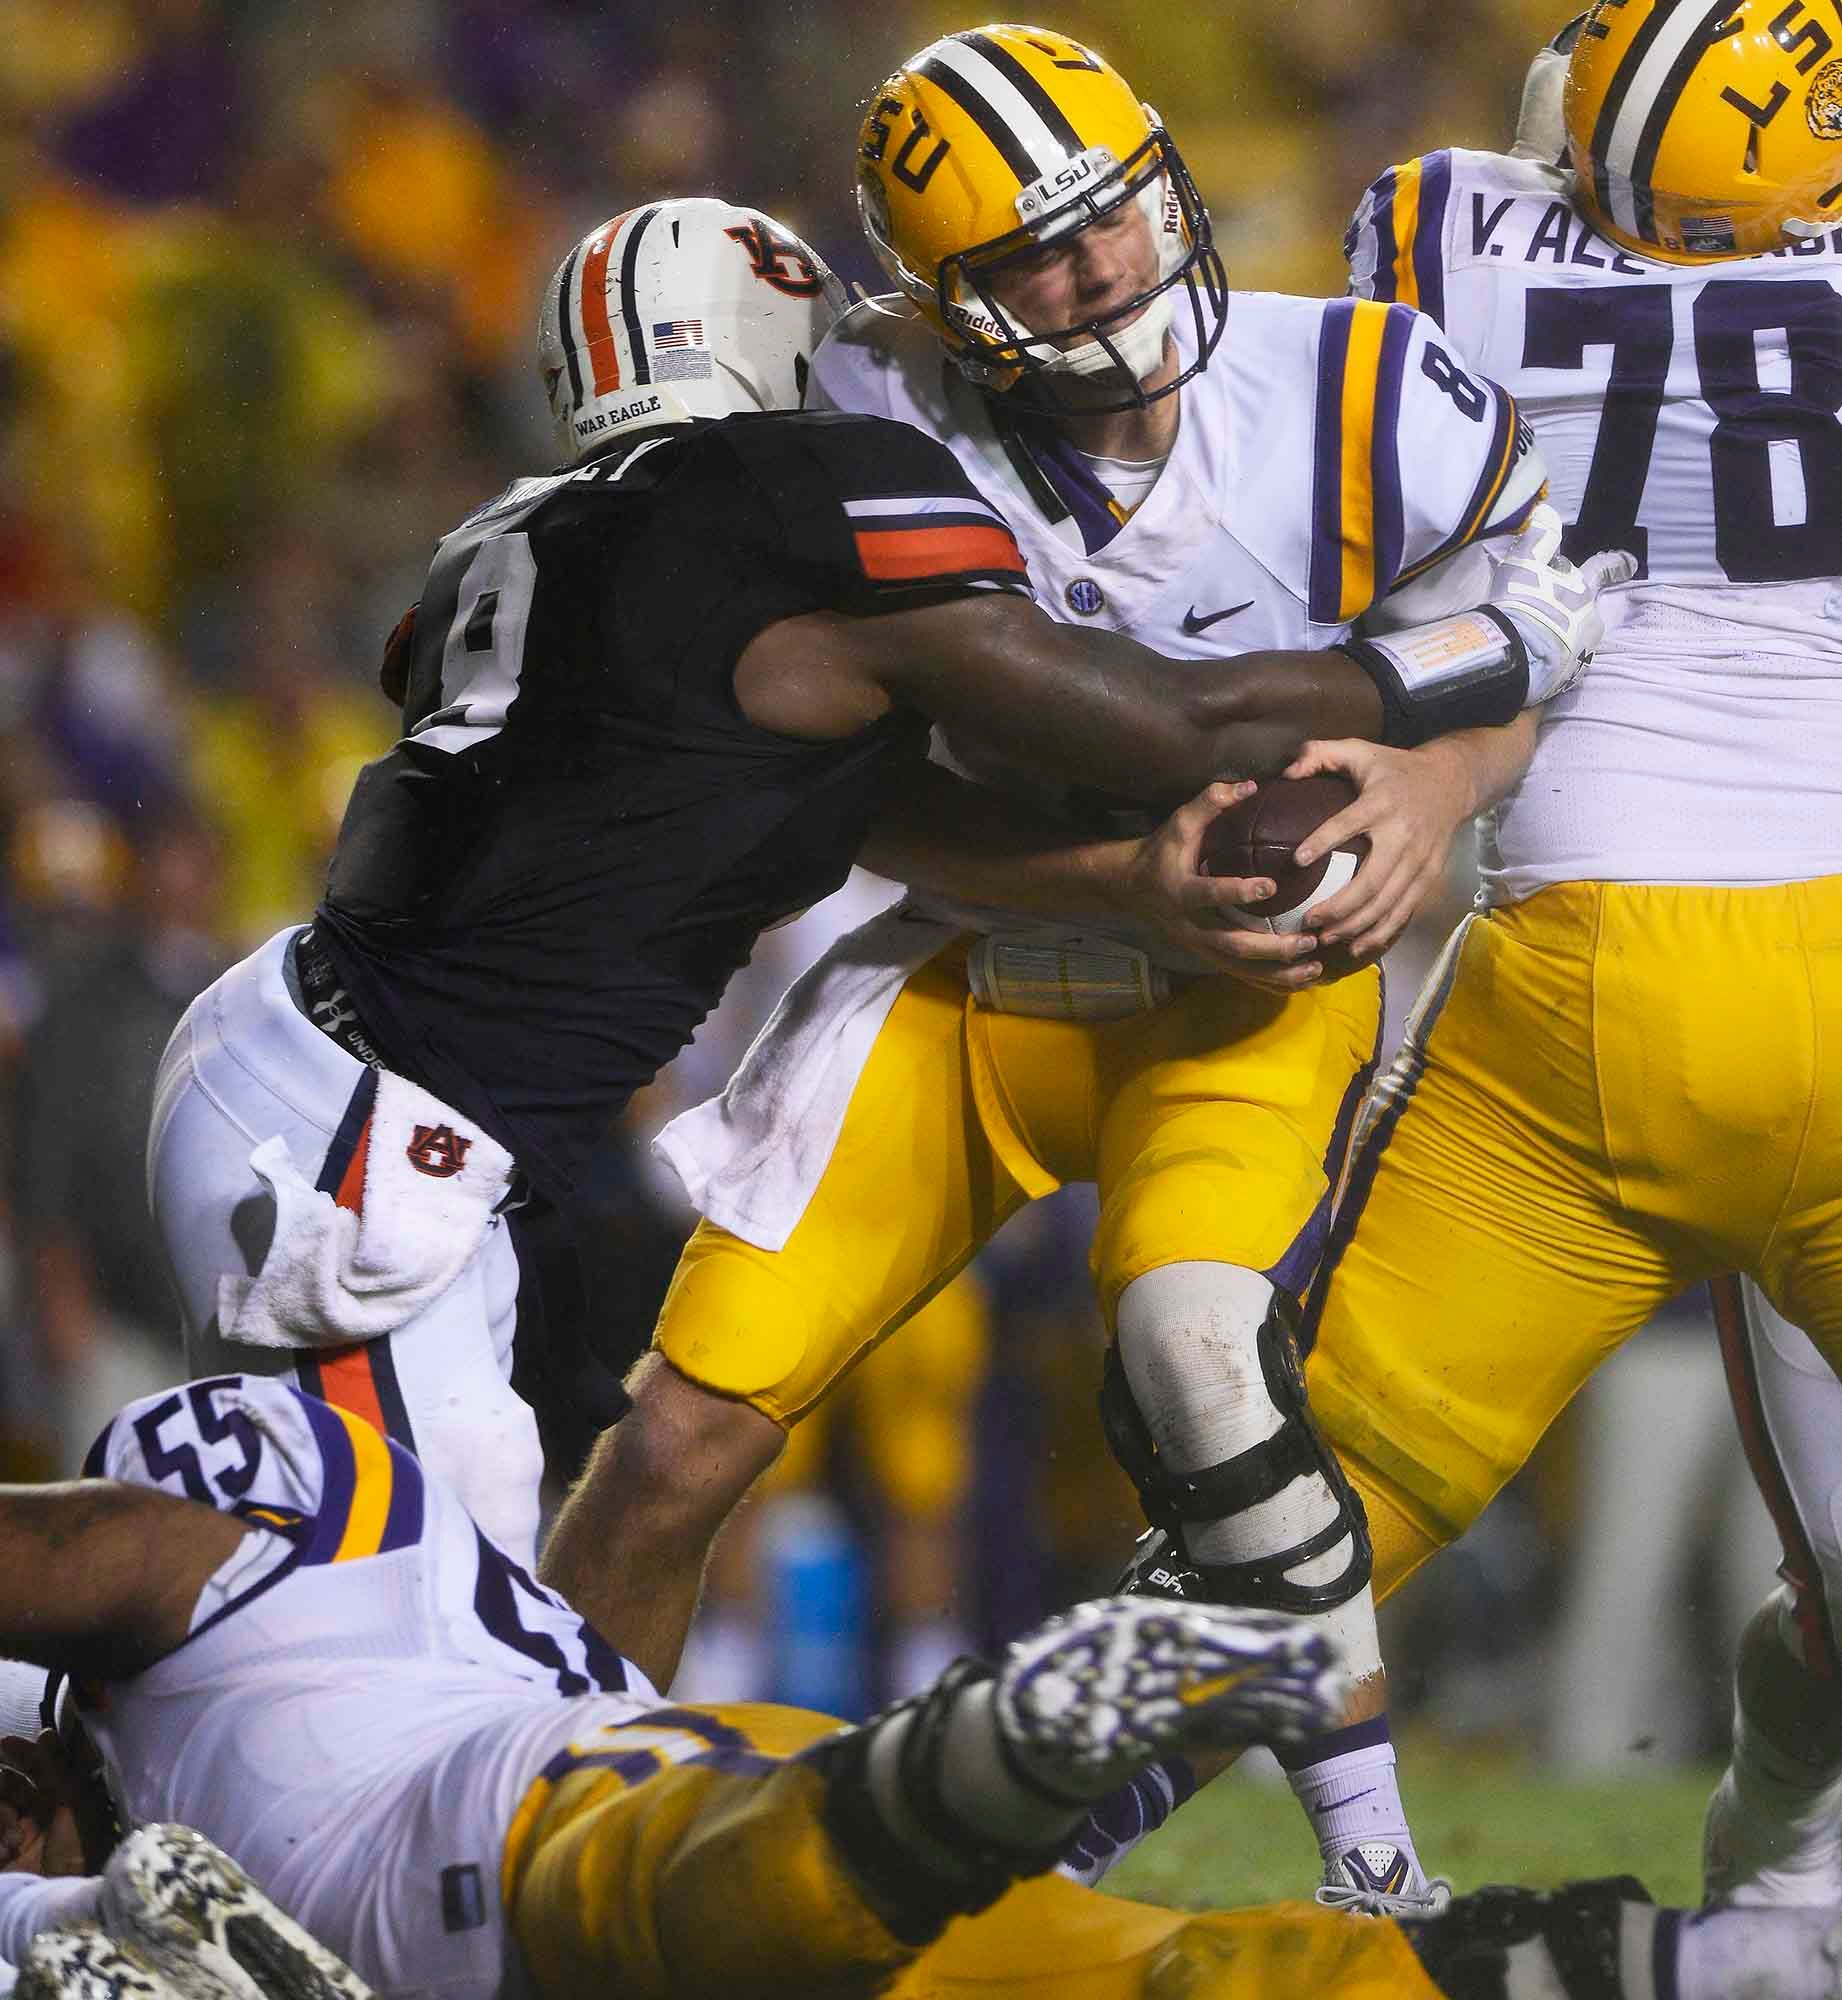 Auburn made some good plays against LSU, including this sack of quarterback Zach Mettenberger tha